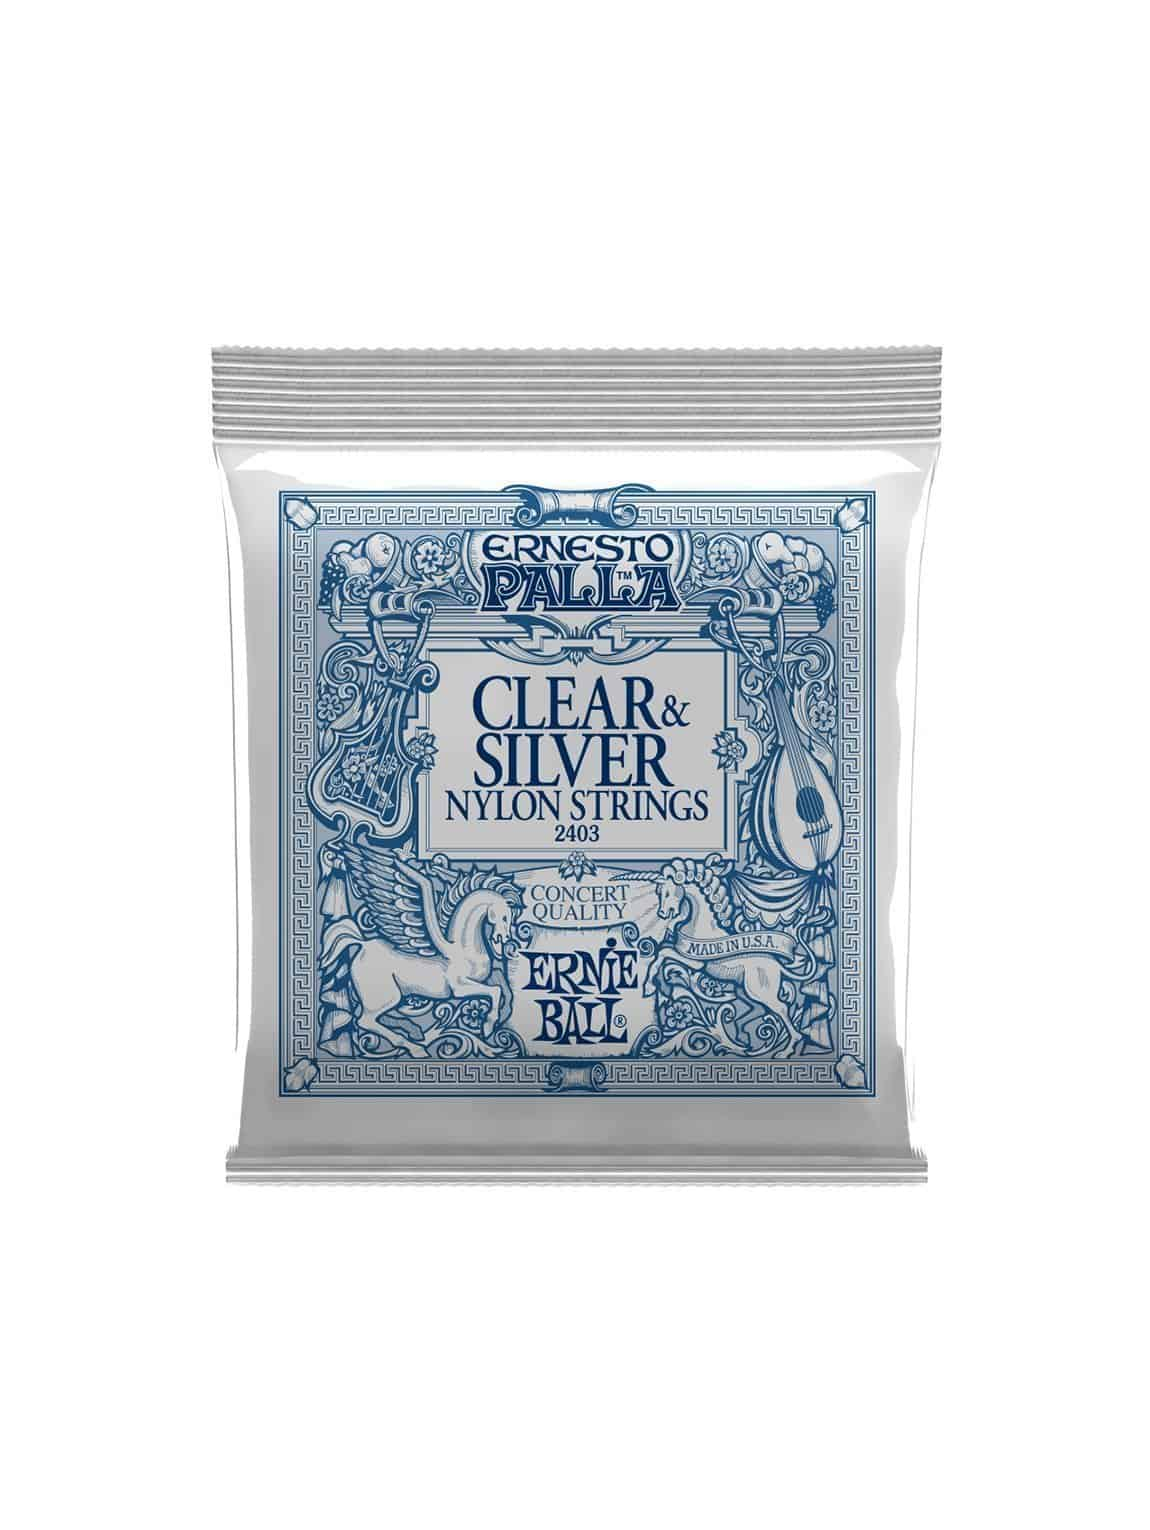 Ernie Ball - Nylon (Clear & Silver) [2403]